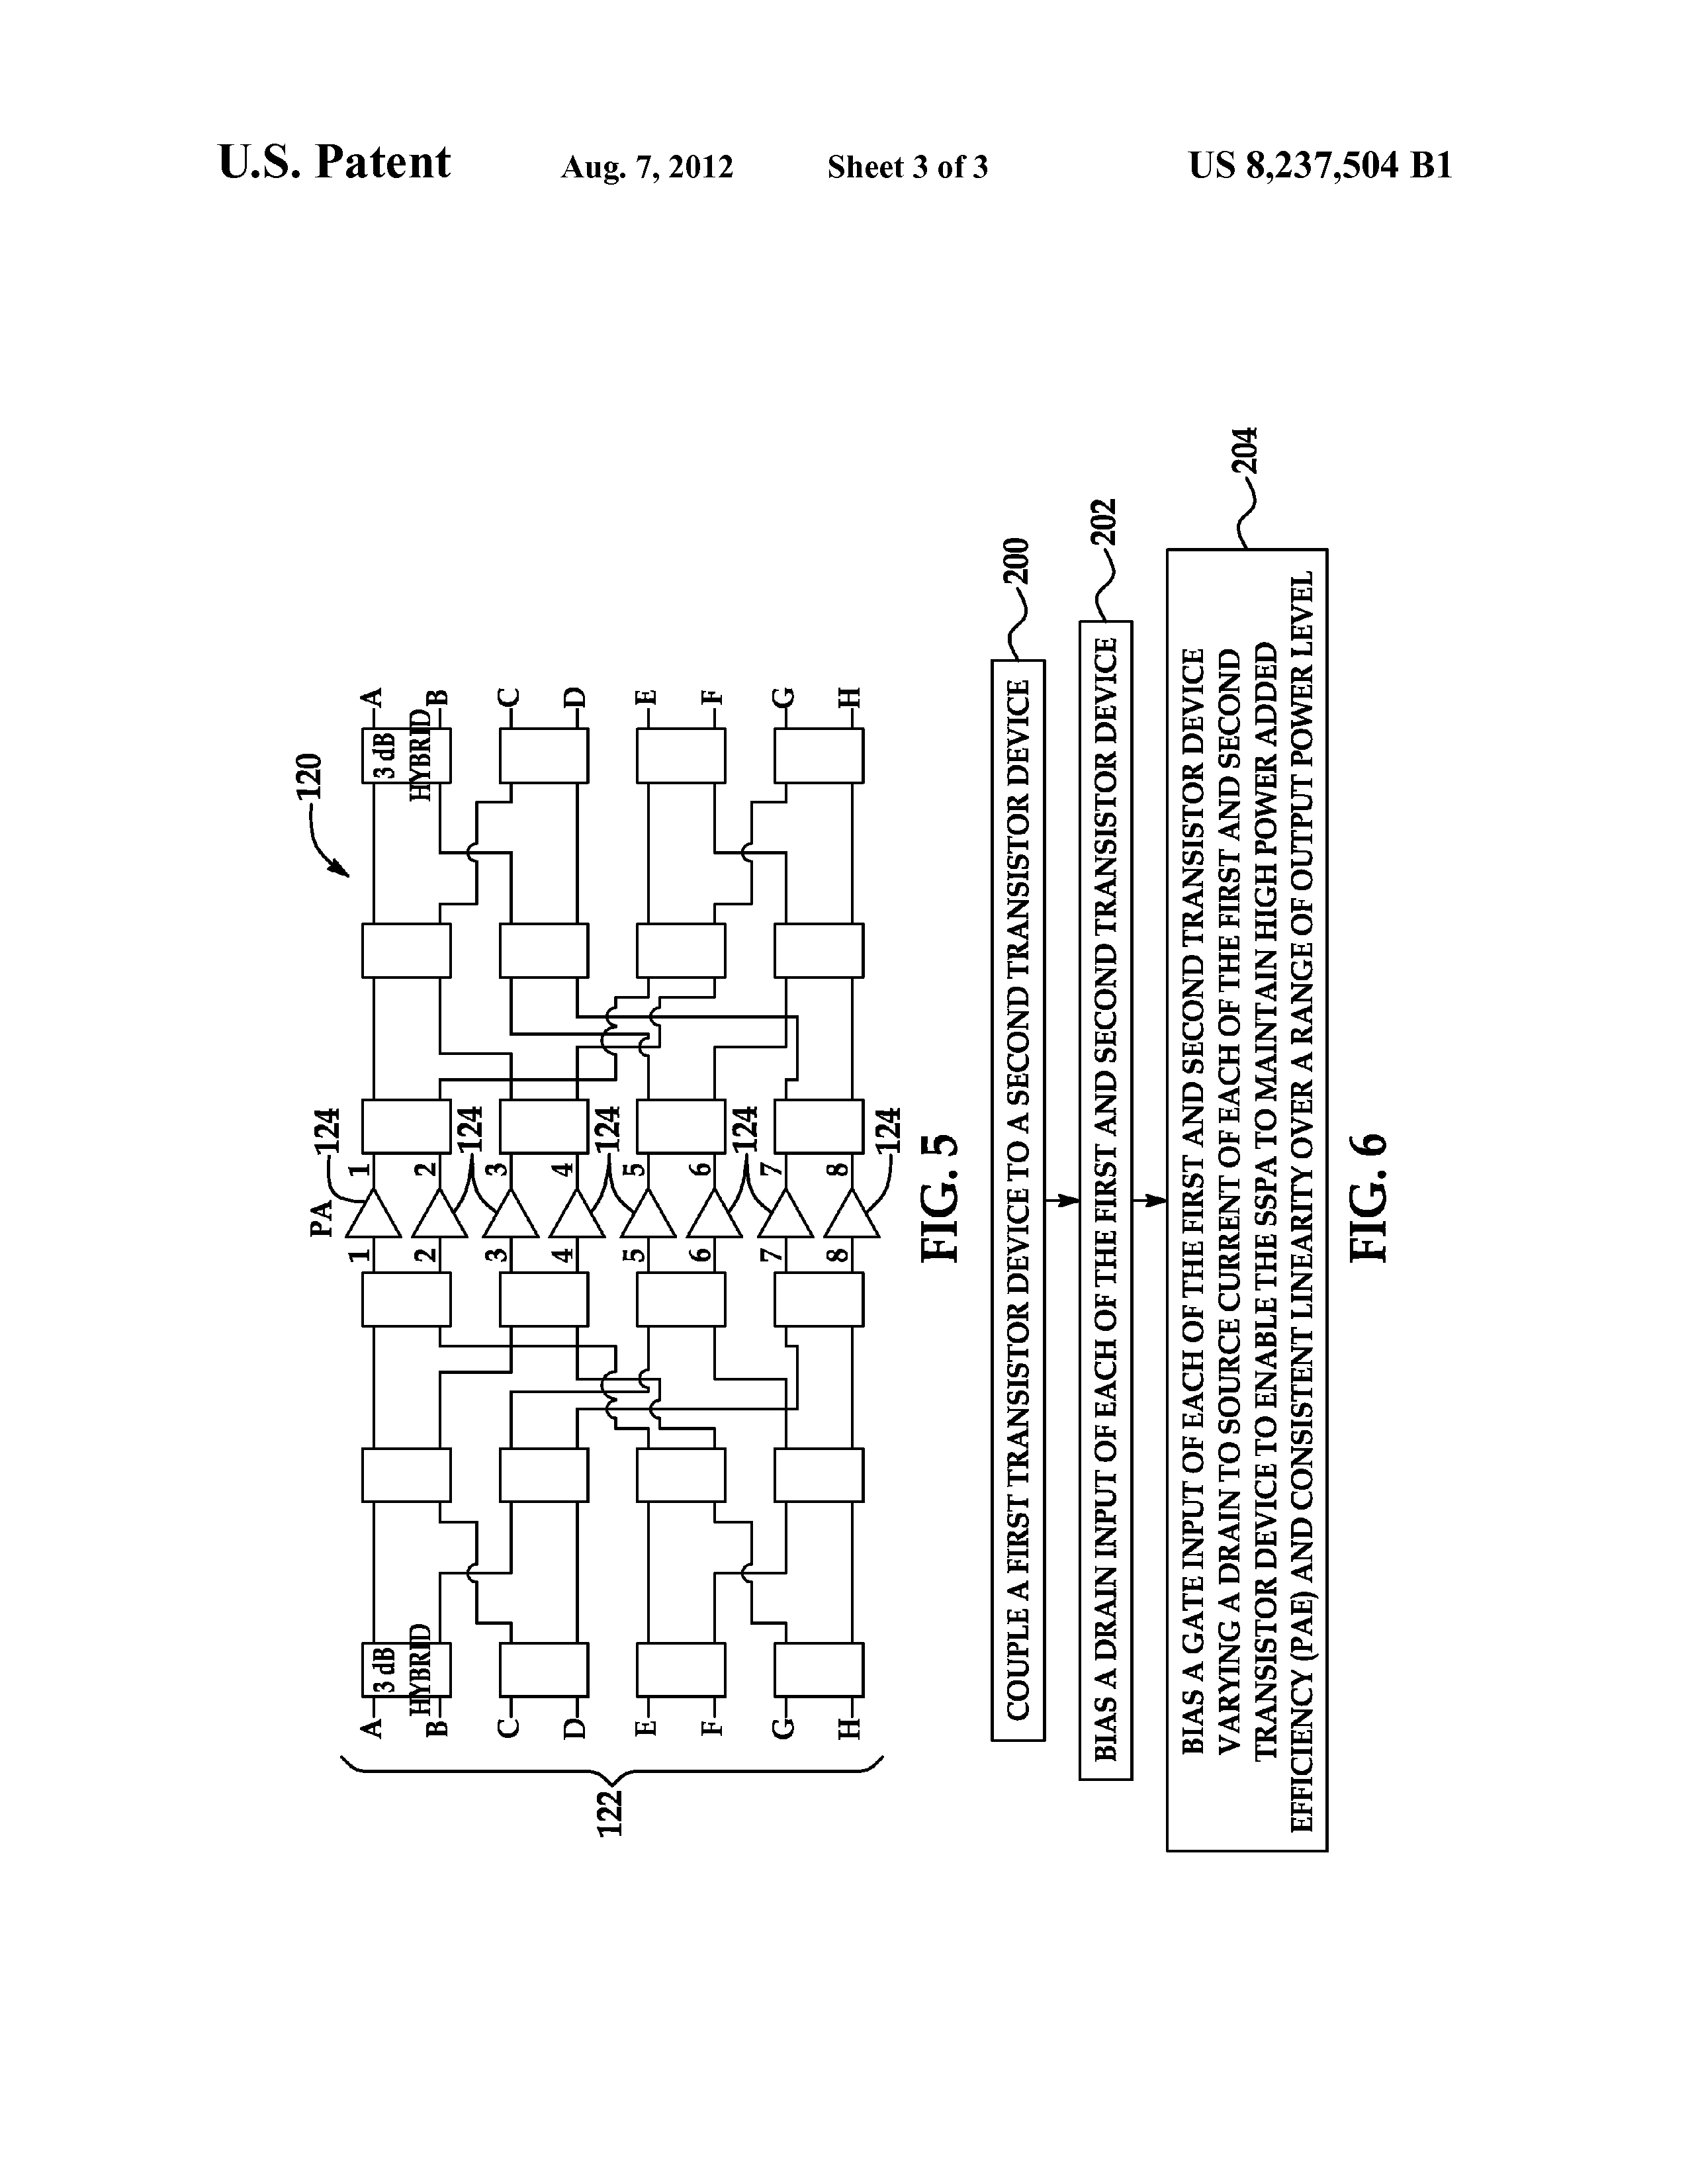 Us 8237504 B1 Microwave Variable Power Solid State Amplifier Input Transistor And Gate Previous Next